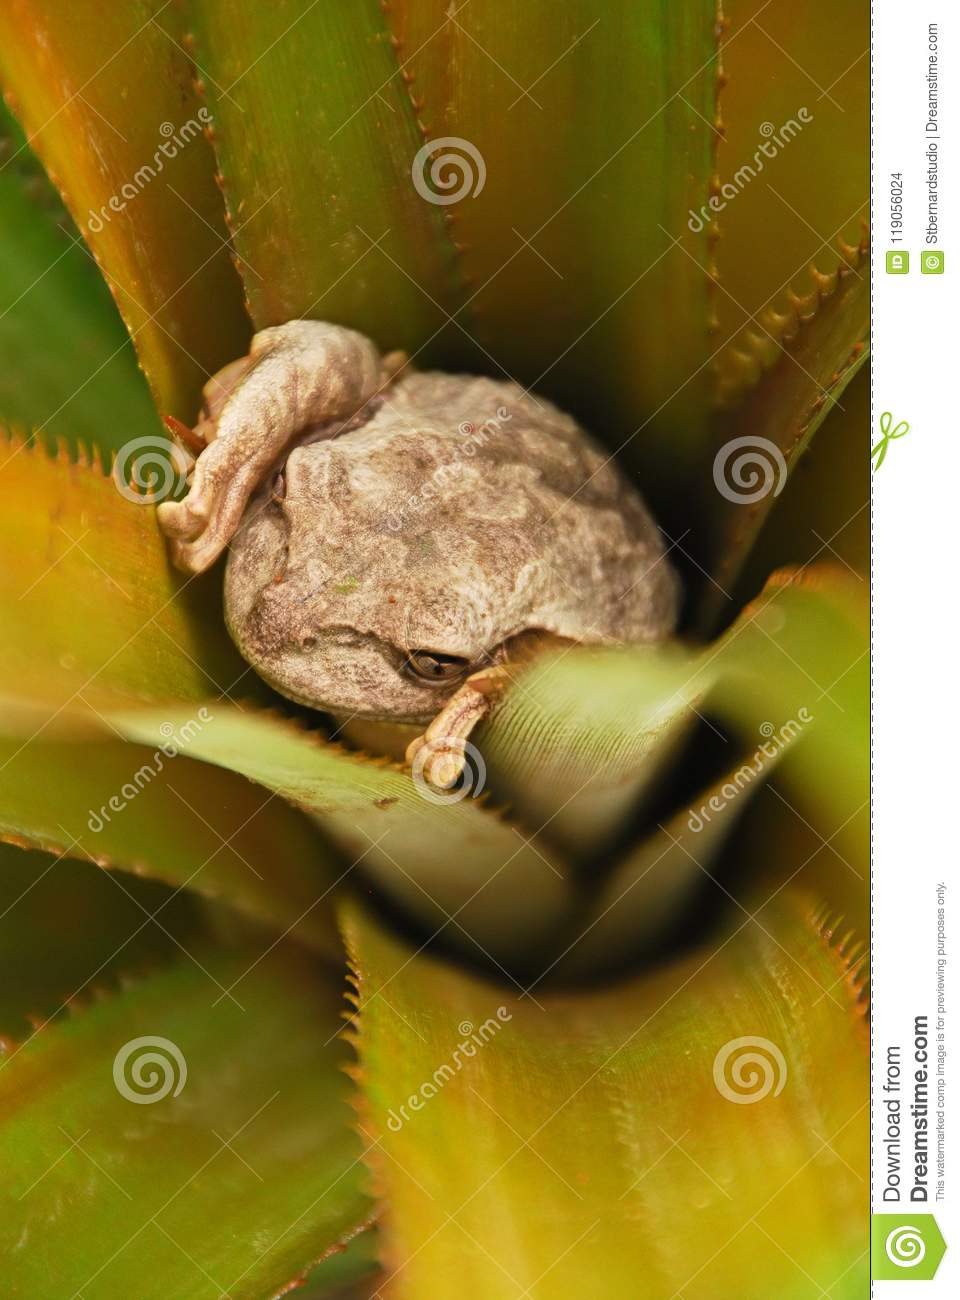 A frog hiding inside a plant in Vinales, Cuba